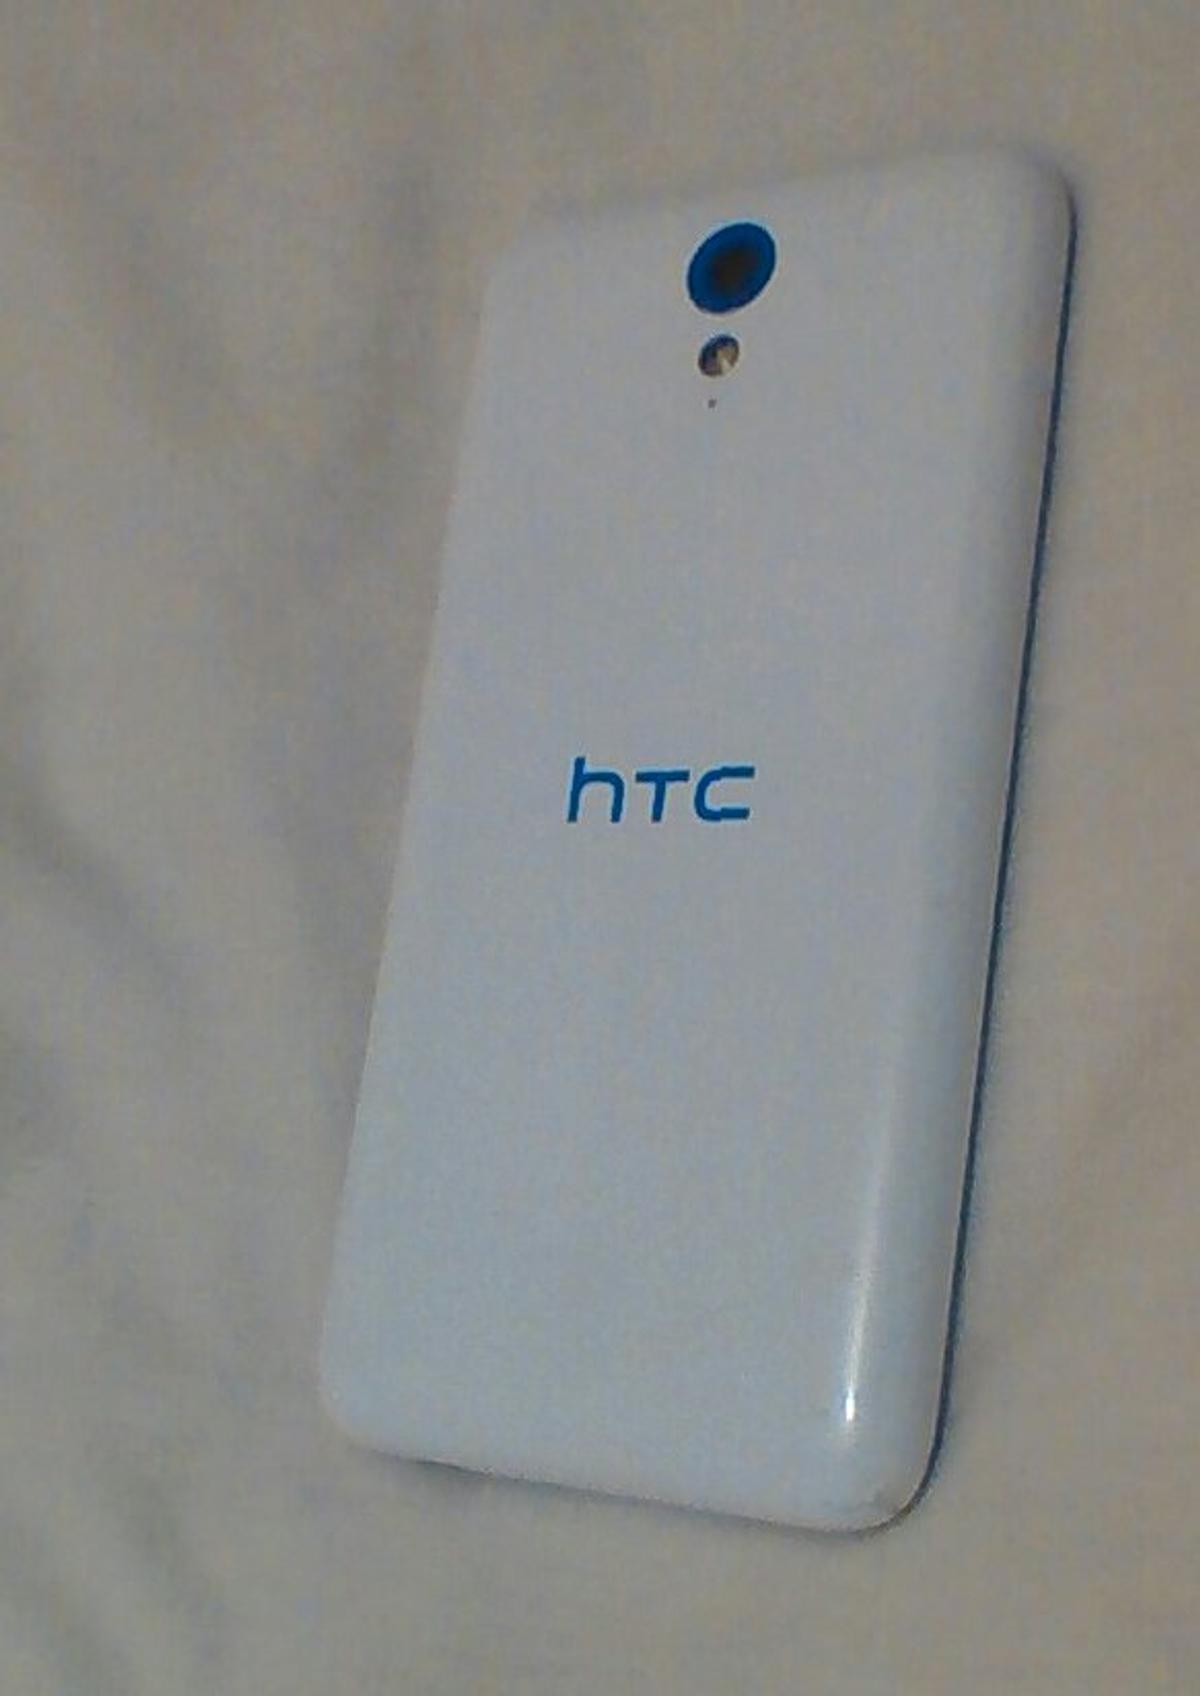 Brilliant phone. Has minor marks on corners and the screen is slightly cracked but does not effect the usage of the phone. No charger included only phone .